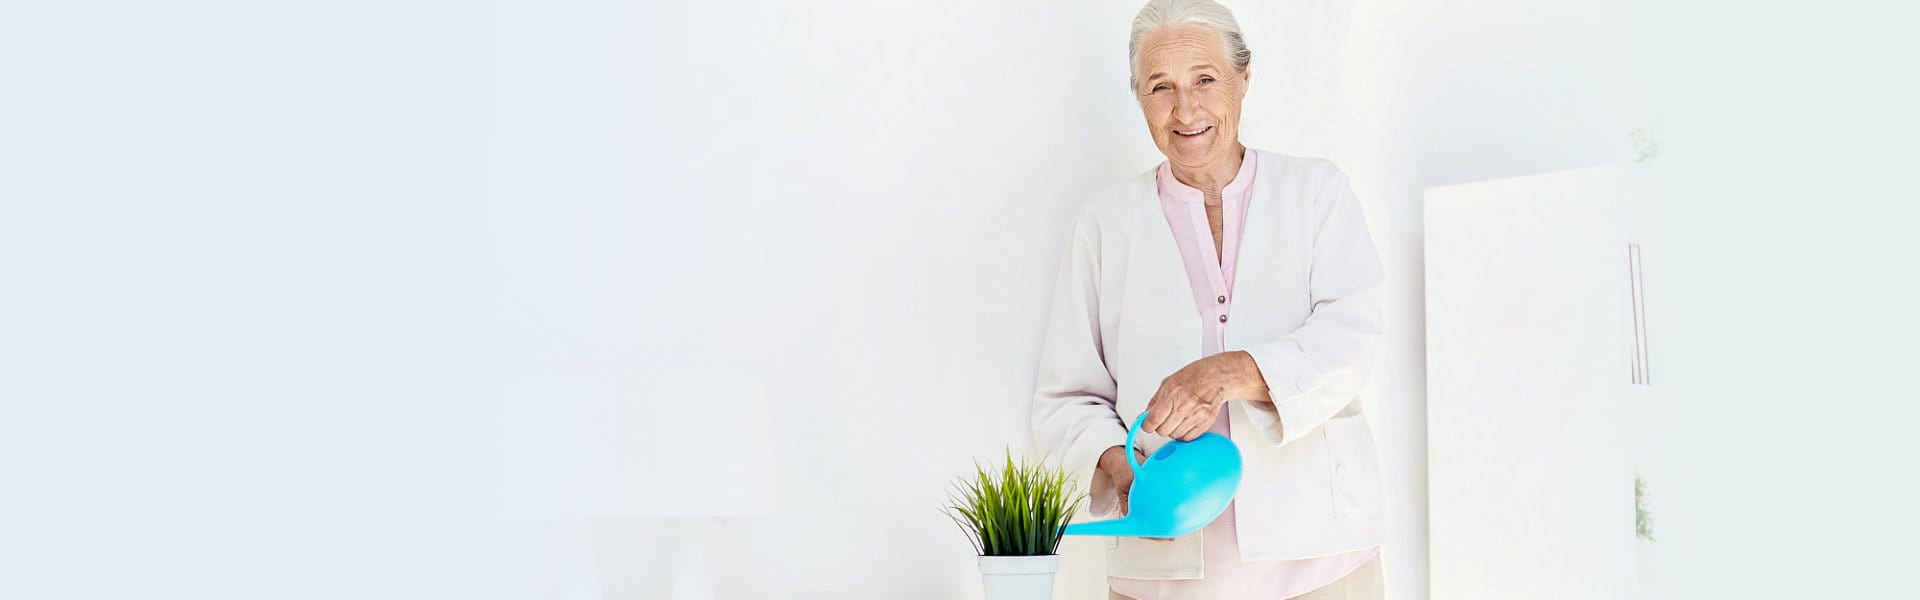 senior woman watering plants